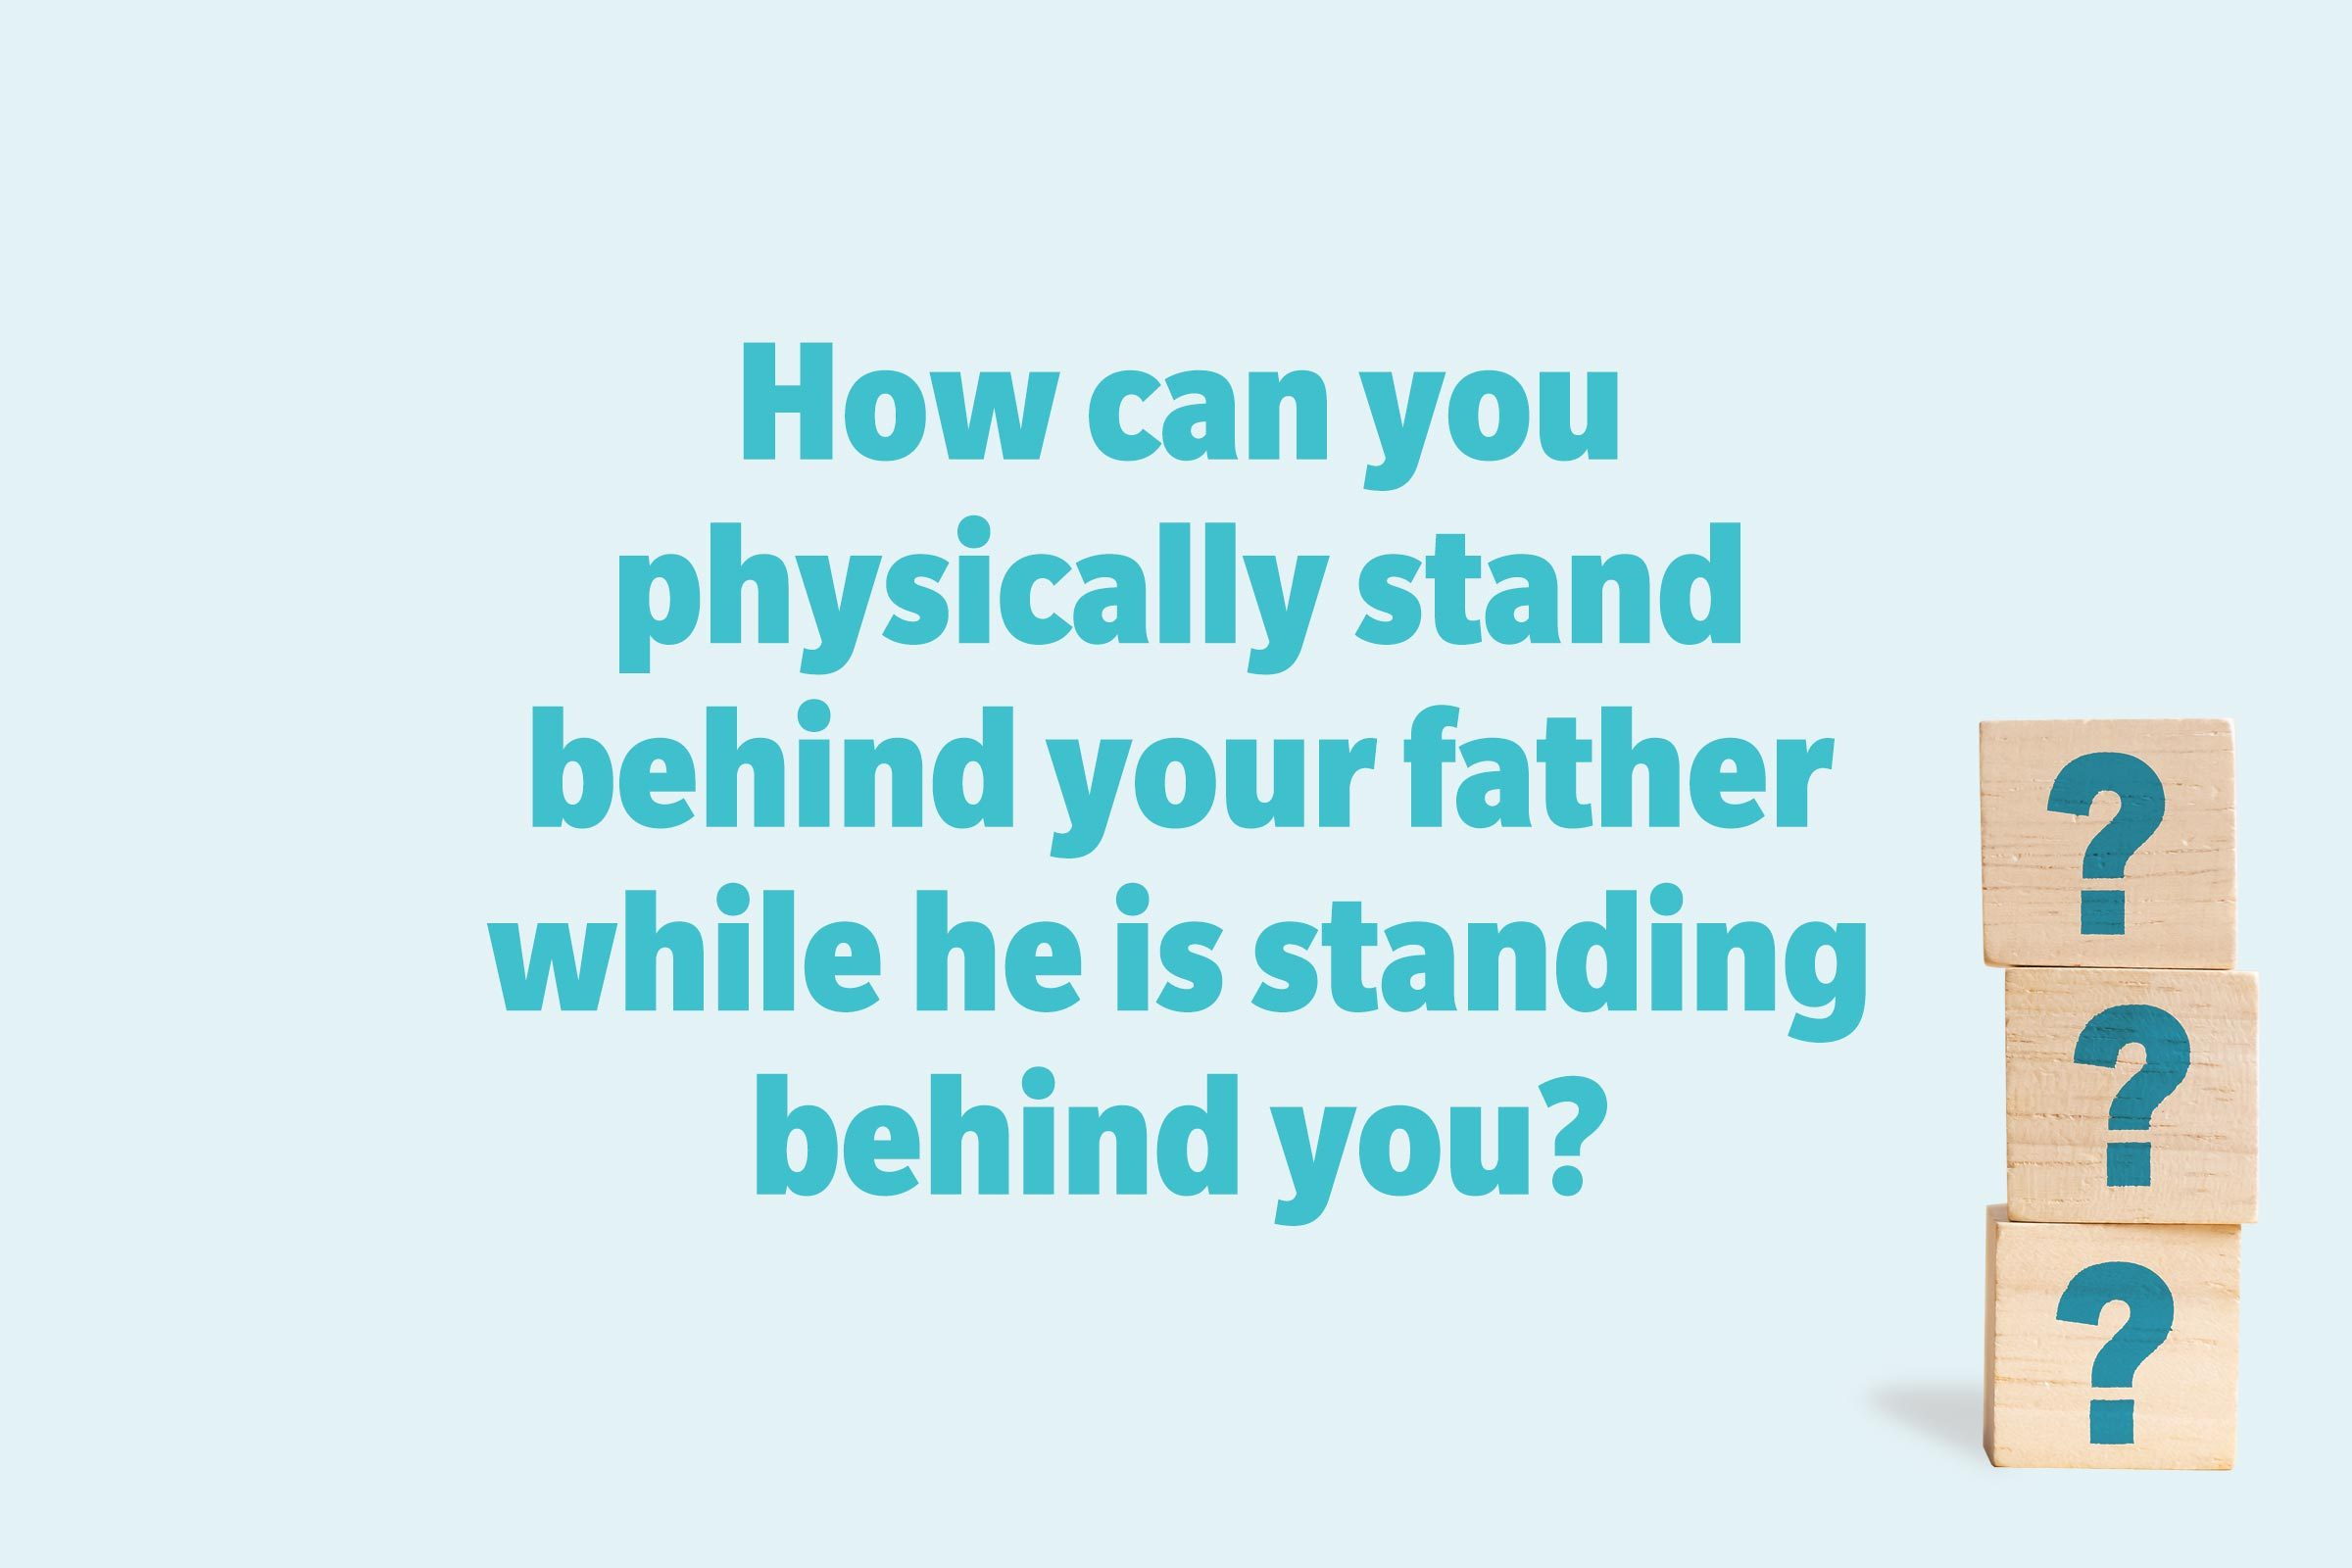 How can you physically stand behind your father while he is standing behind you?